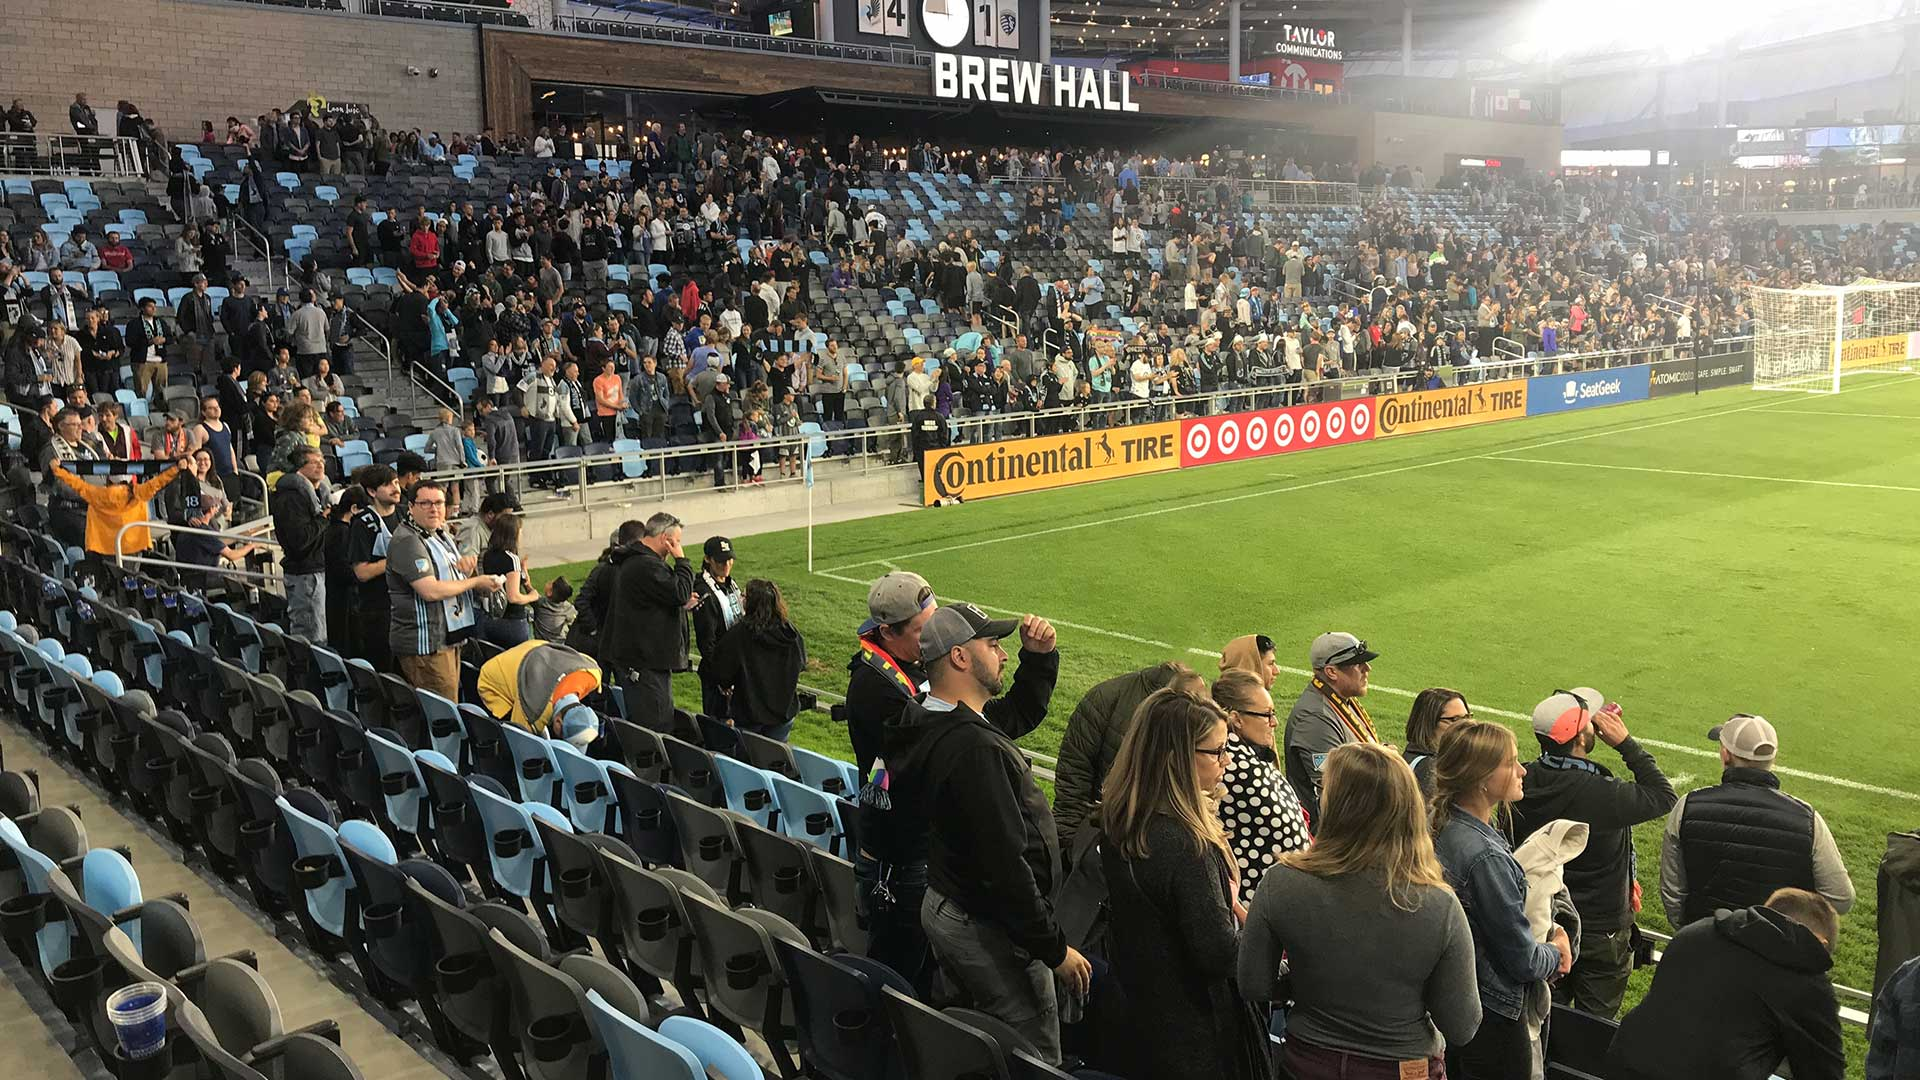 Minnesota-United-fans-at-Allianz-Field-feel-disconnected-to-experience-knowing-stadium-built-without-taxpayer-subsidies.jpg